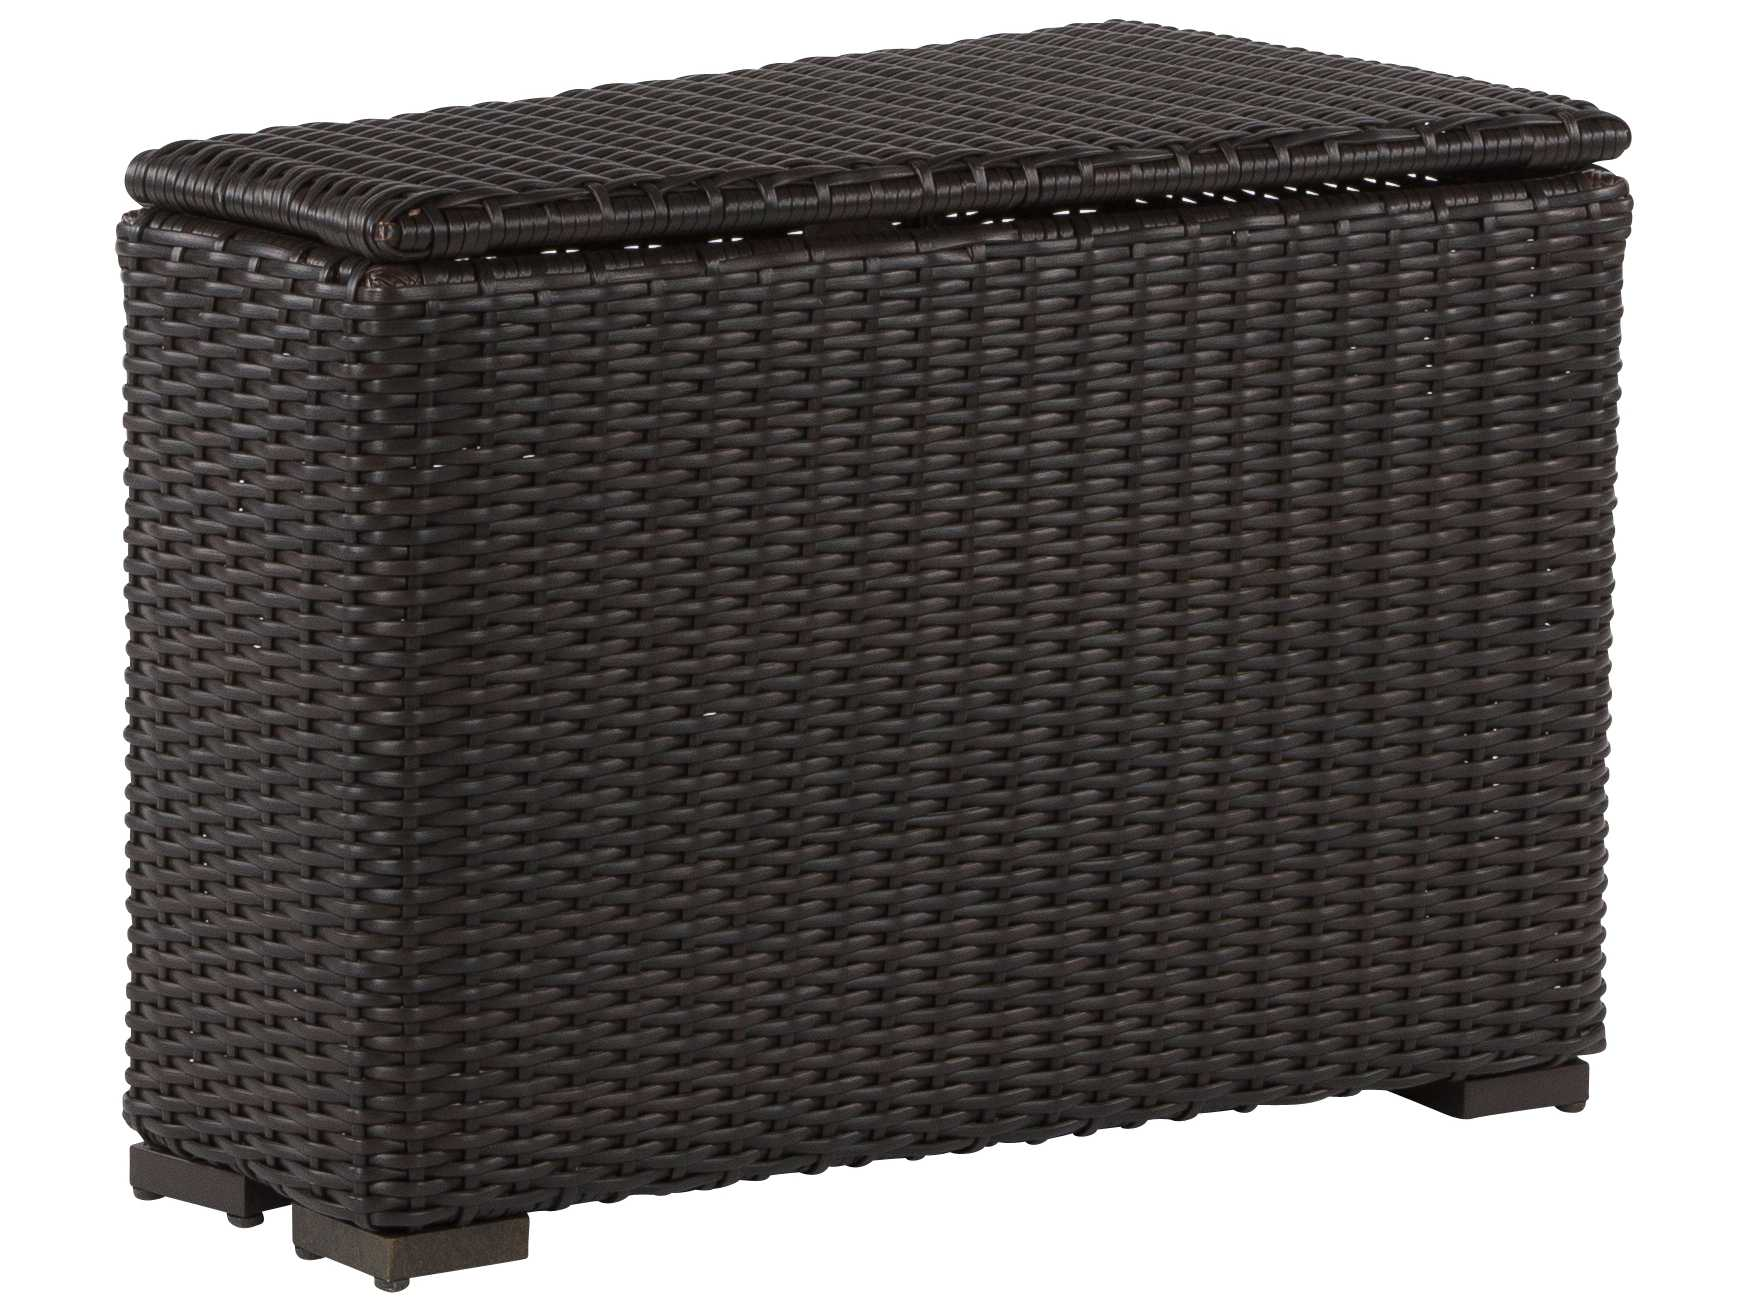 Windward Design Group Dakota Sectional Aluminum Wicker Arm Storage